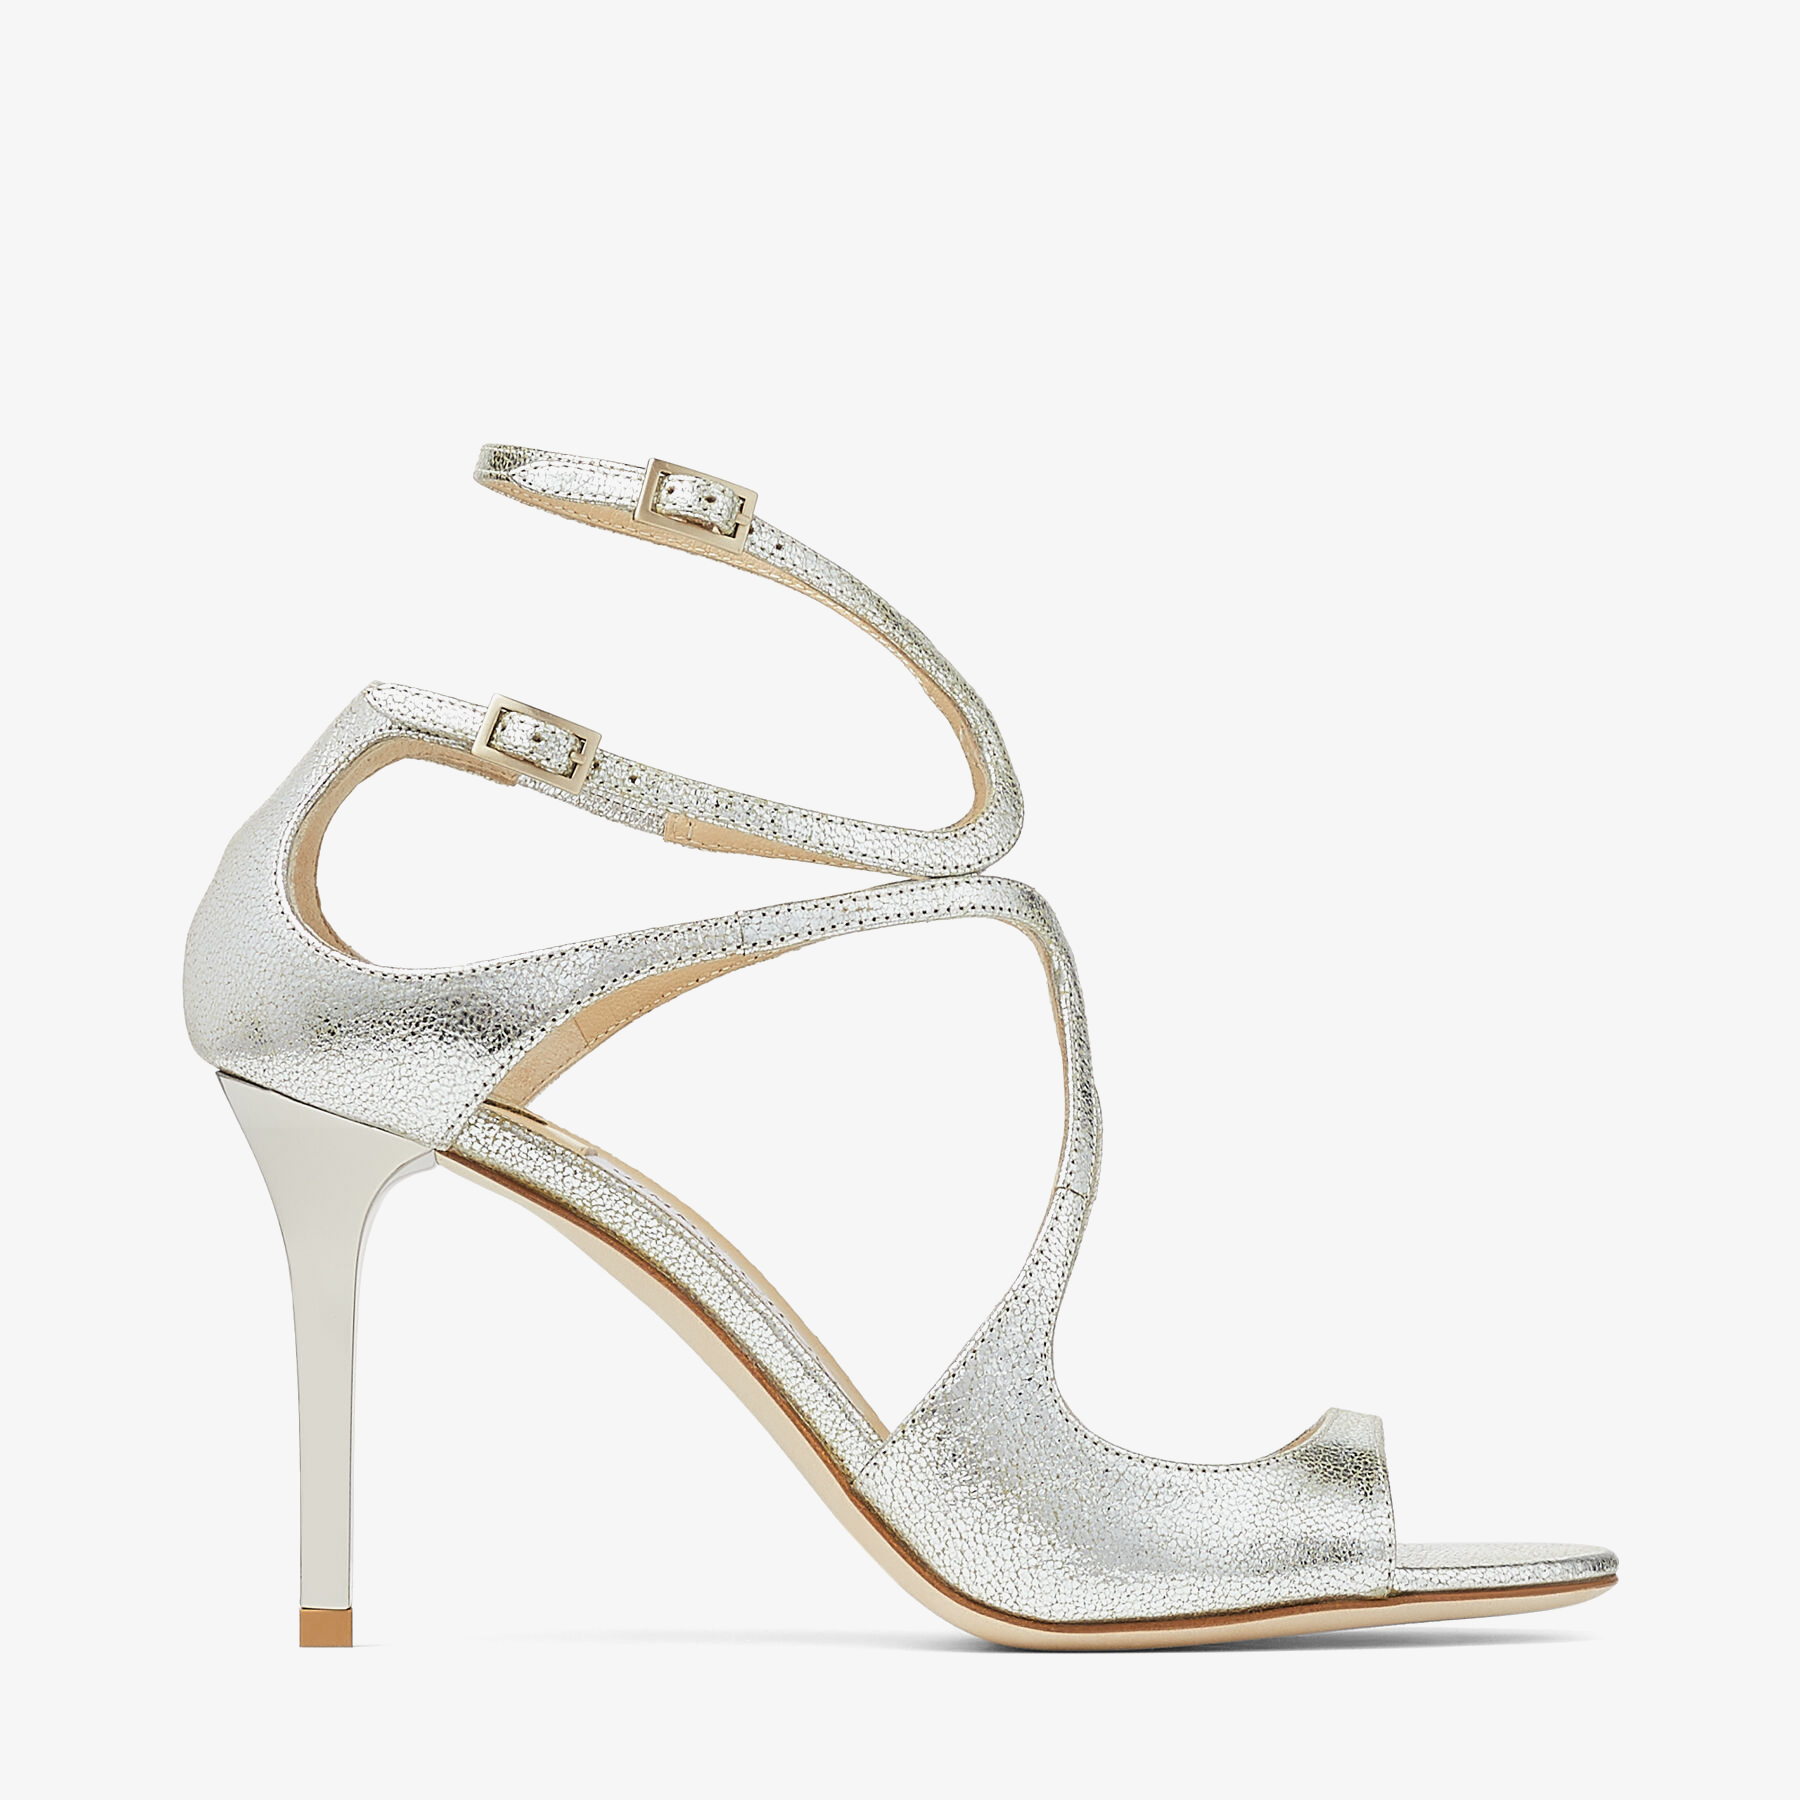 IVETTE Champagne Glitter Strappy Sandals by Jimmy Choo